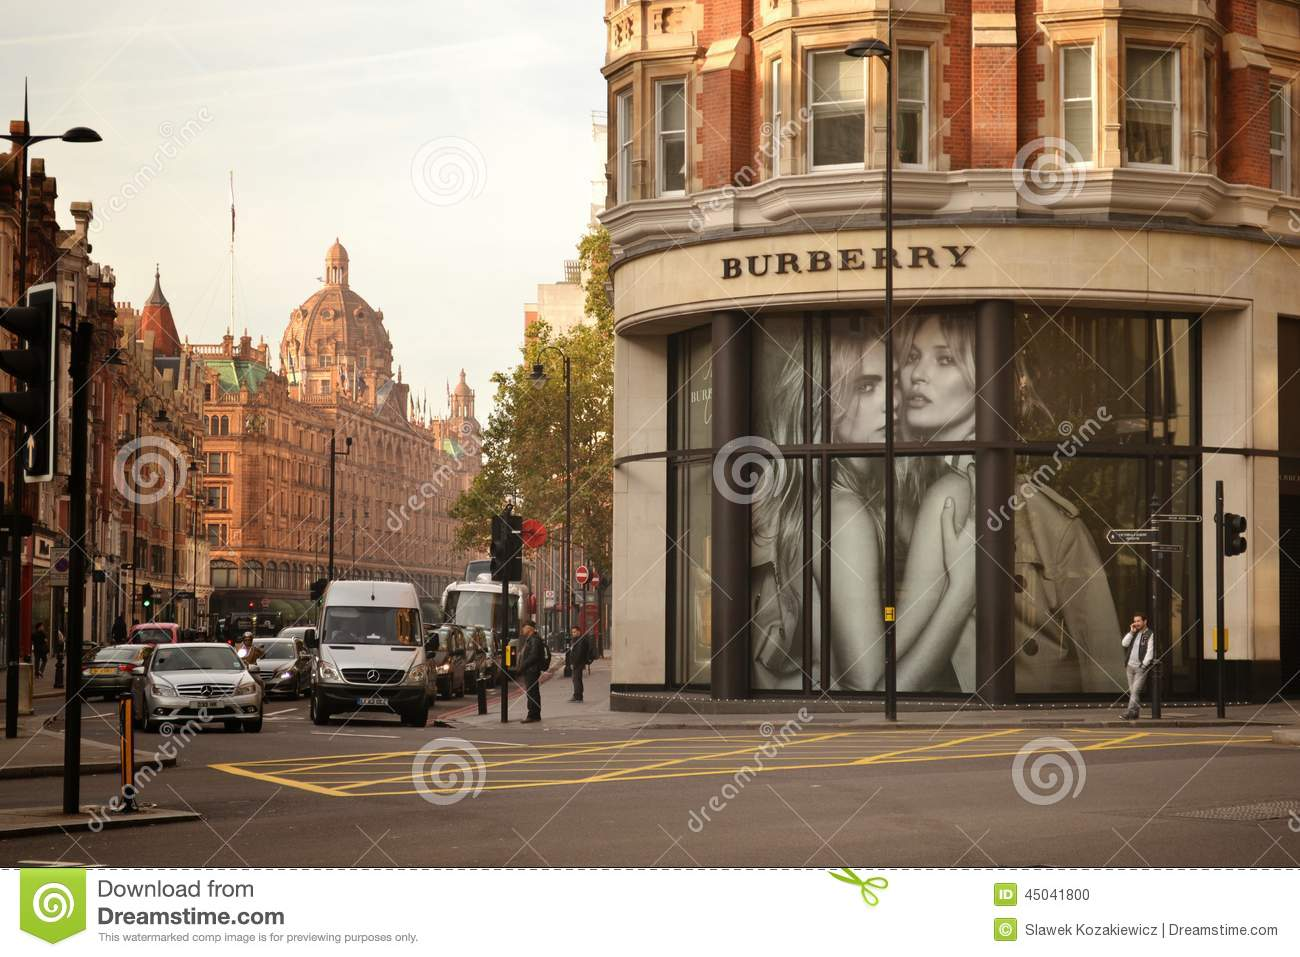 burberry shop knightsbridge london editorial image image